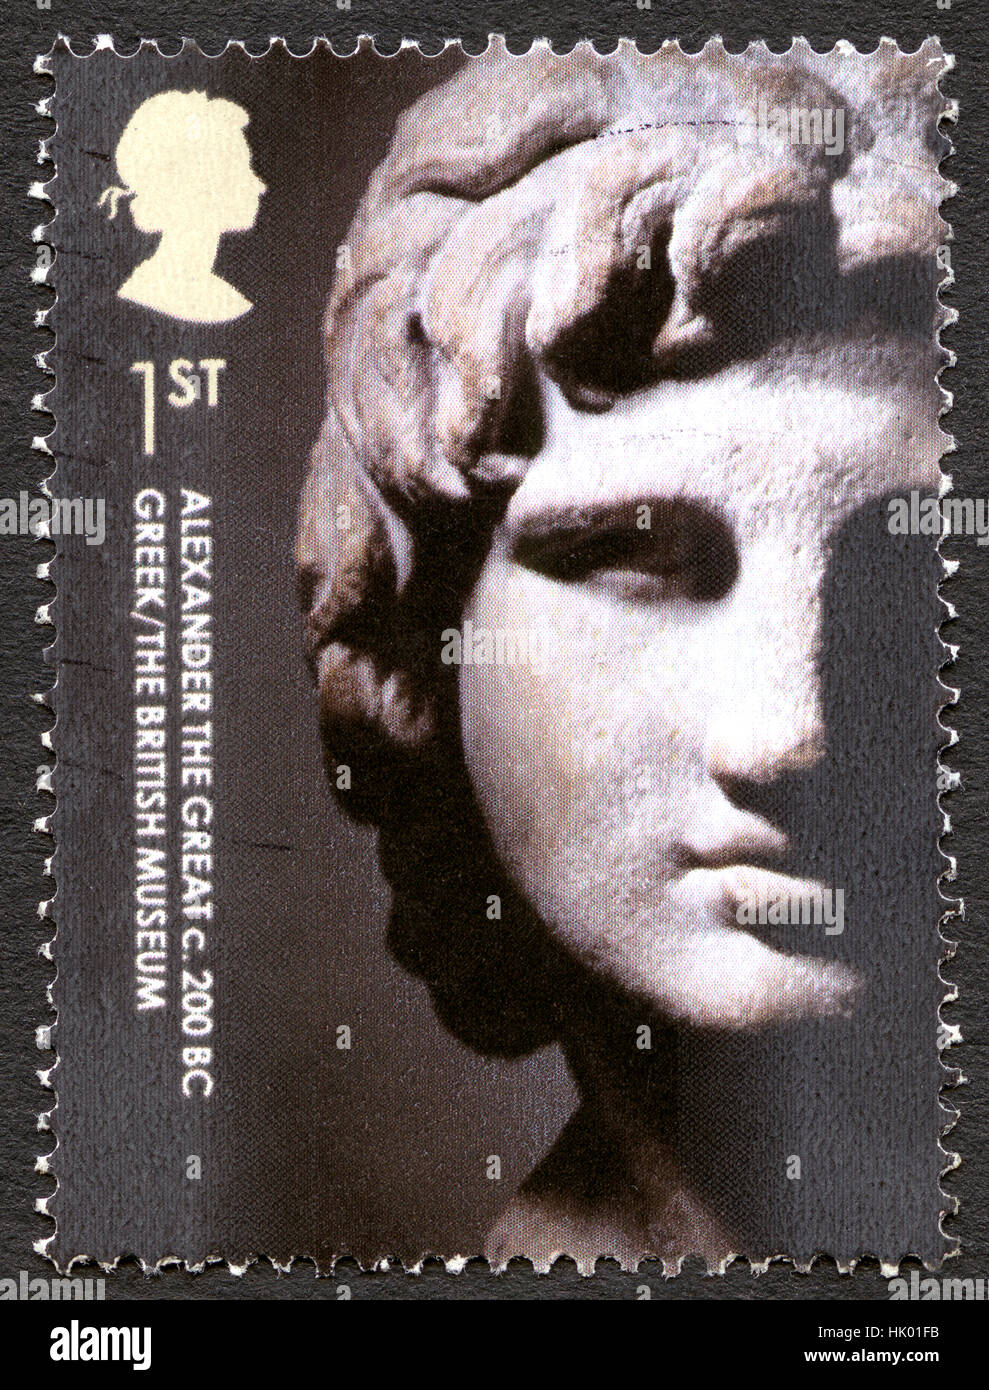 GREAT BRITAIN - CIRCA 2003: A used postage stamp from the UK, depicting an image of an Alexander the Great sculpture - Stock Image